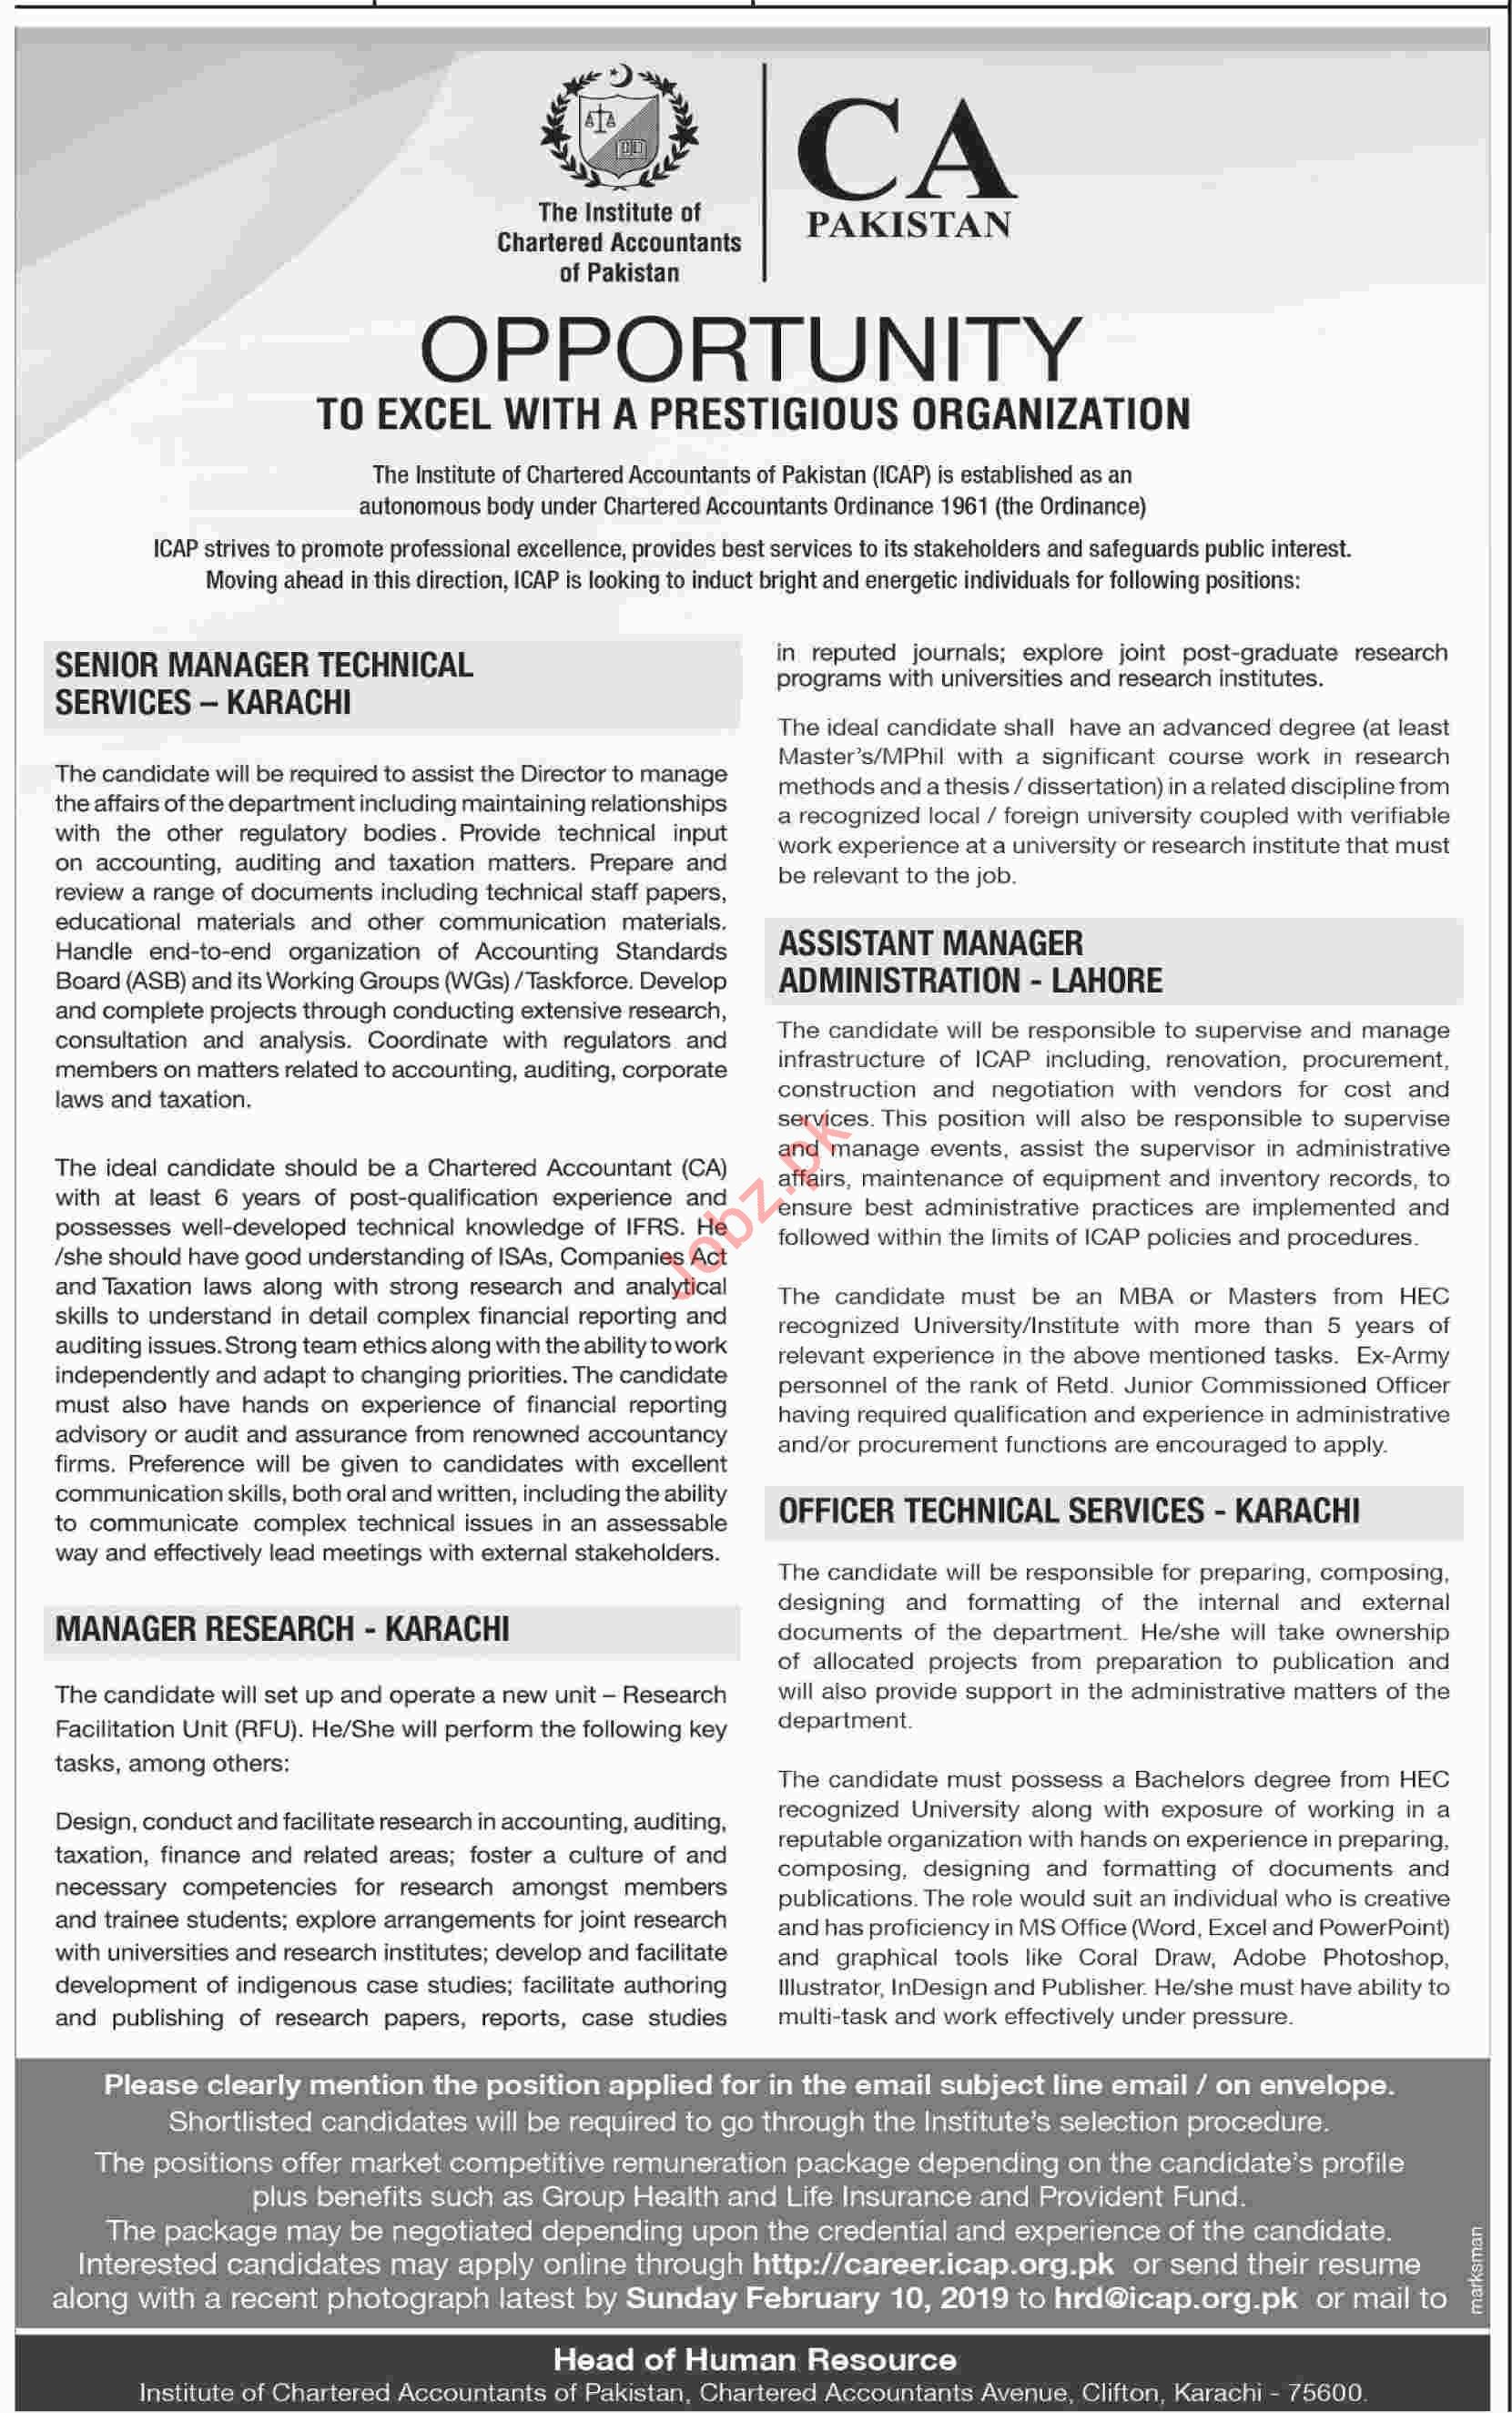 Senior Manager Technical Services Jobs at CA Pakistan